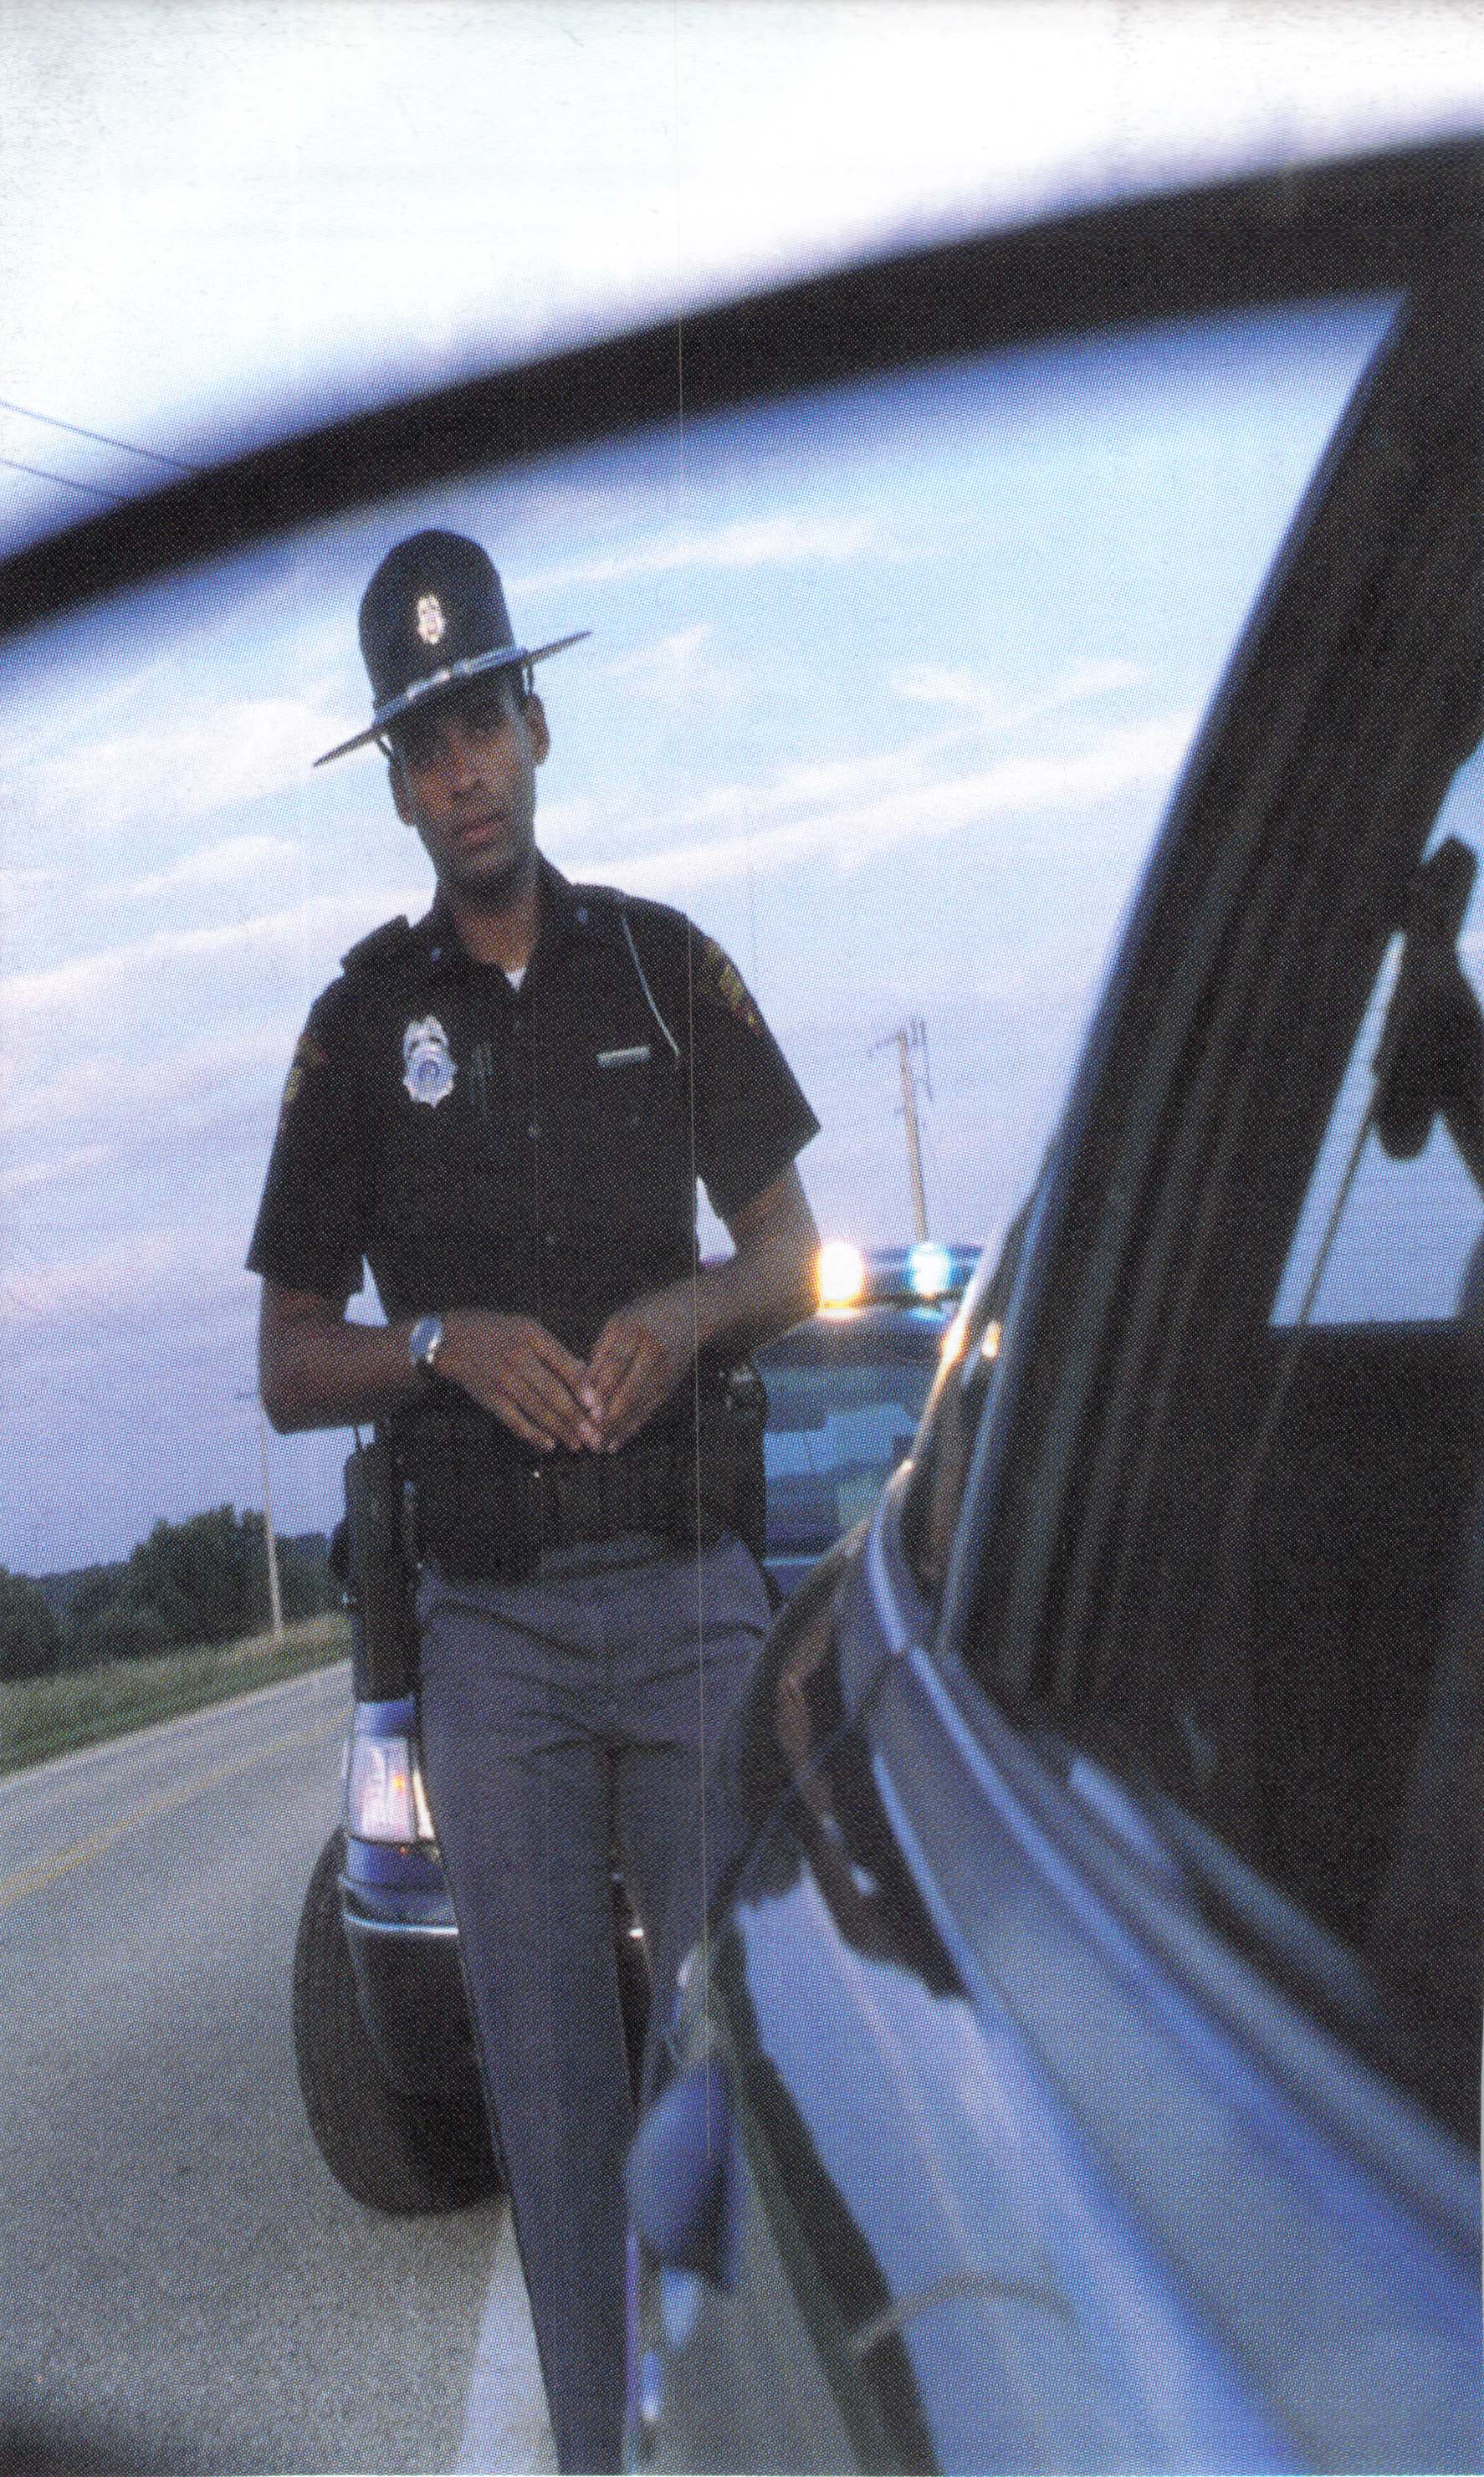 Savannah Police Officer in the mirror at DUI Stop